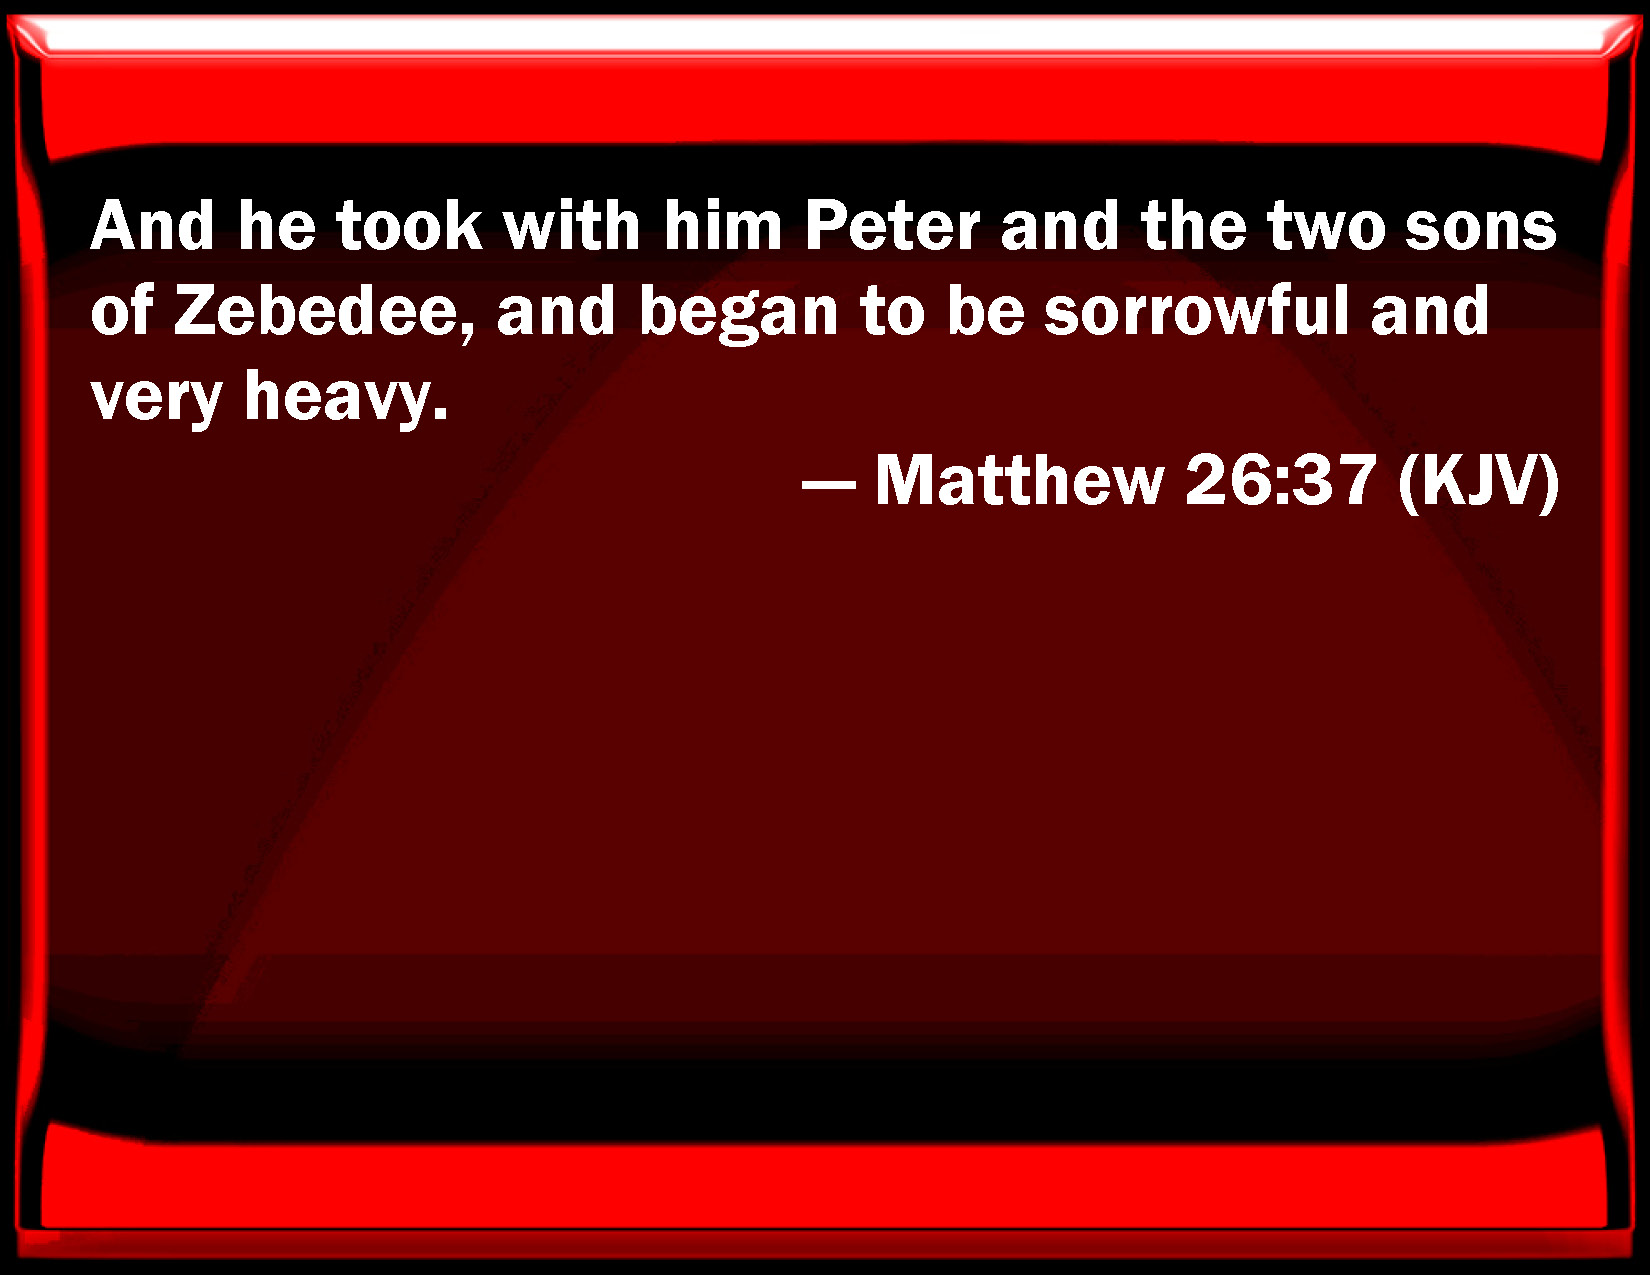 Matthew 26:37 And he took with him Peter and the two sons